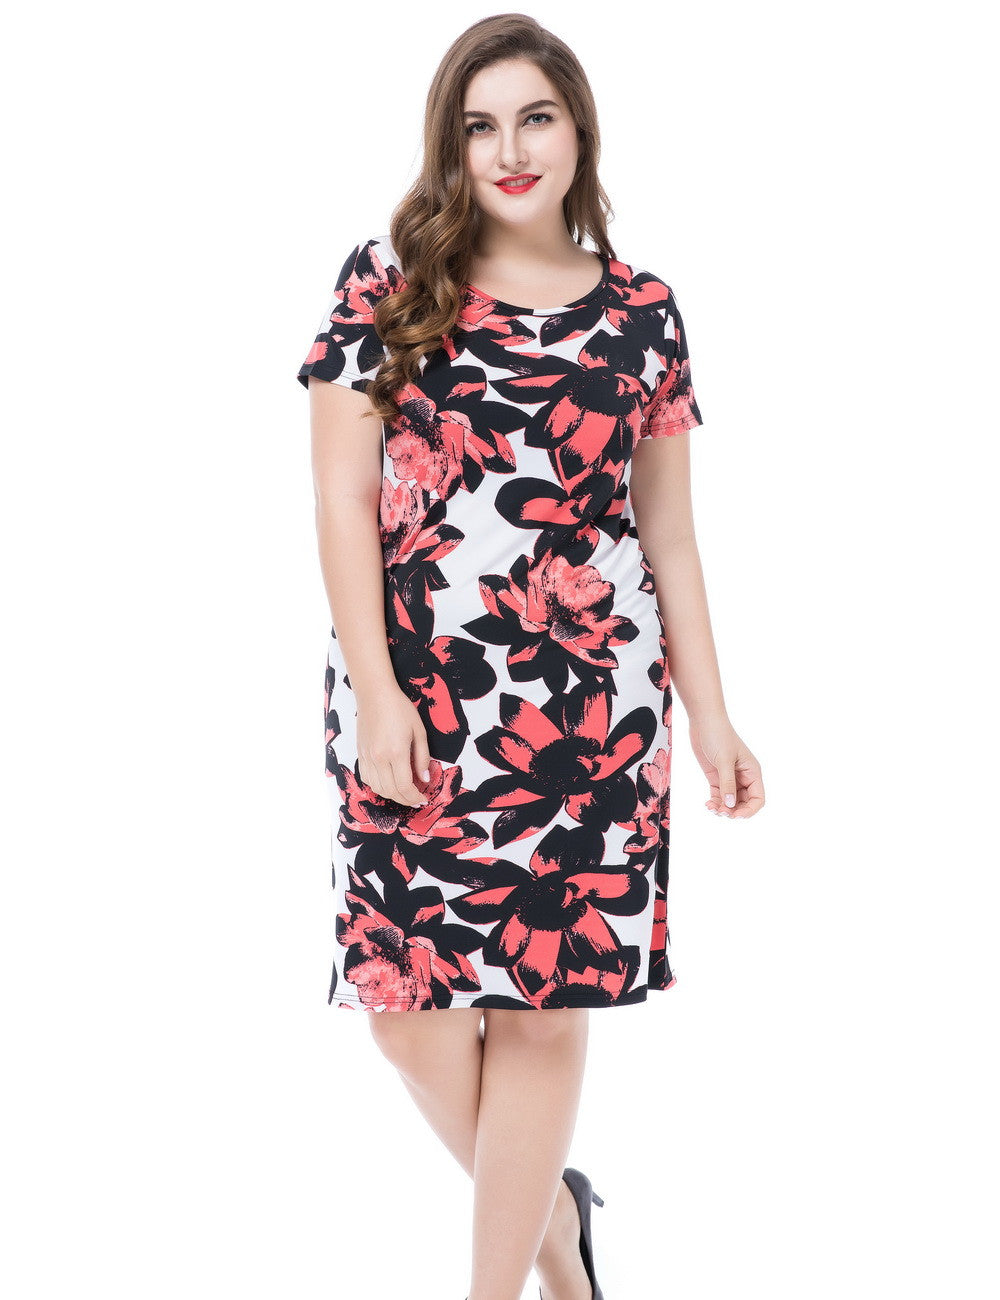 Chicwe Women's Plus Size Floral Printed Dress Round Neck Short Sleeves US16-26